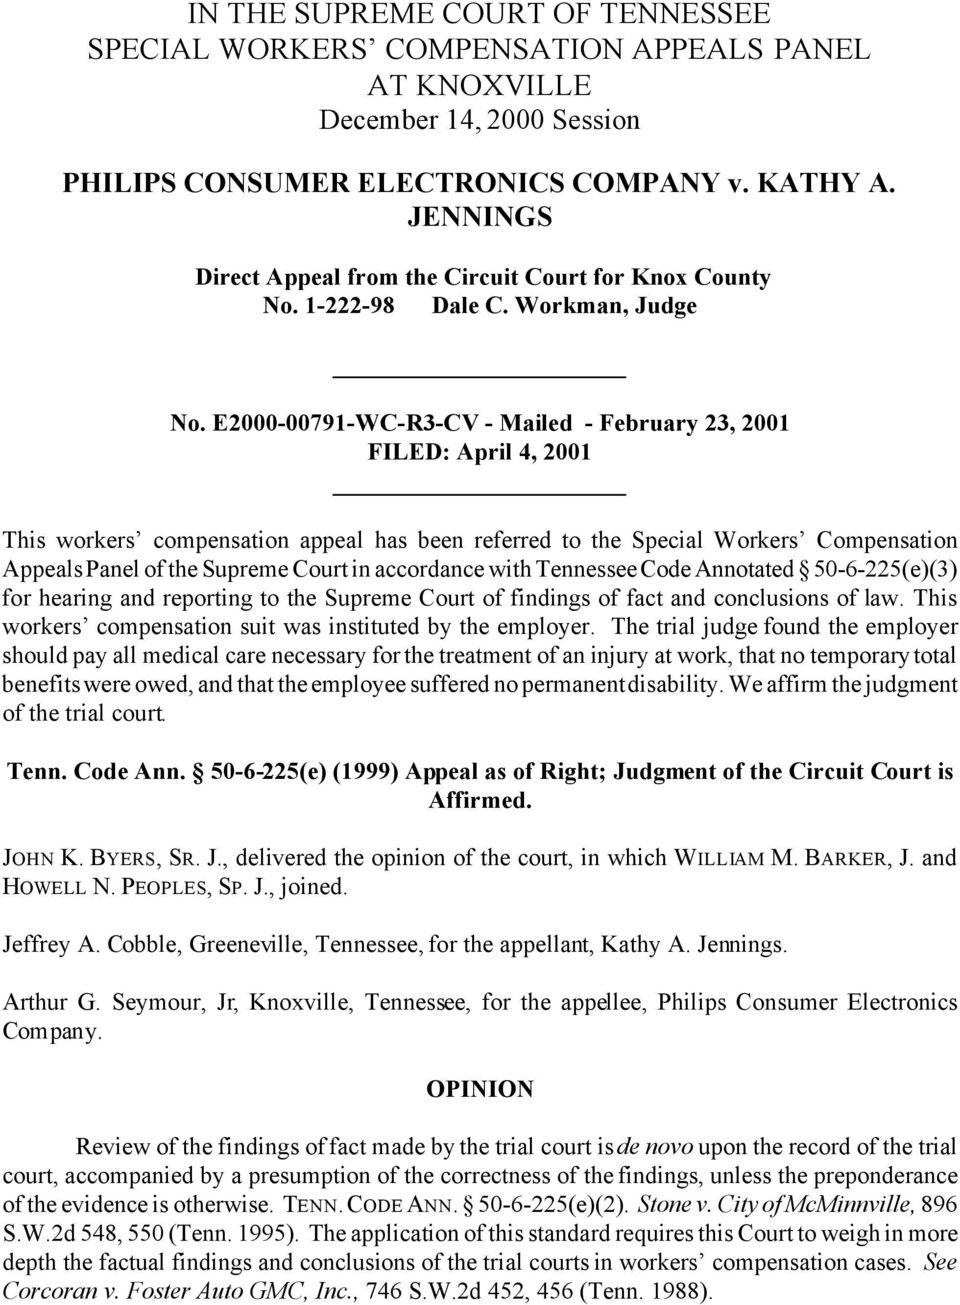 E2000-00791-WC-R3-CV - Mailed - February 23, 2001 FILED: April 4, 2001 This workers compensation appeal has been referred to the Special Workers Compensation Appeals Panel of the Supreme Court in